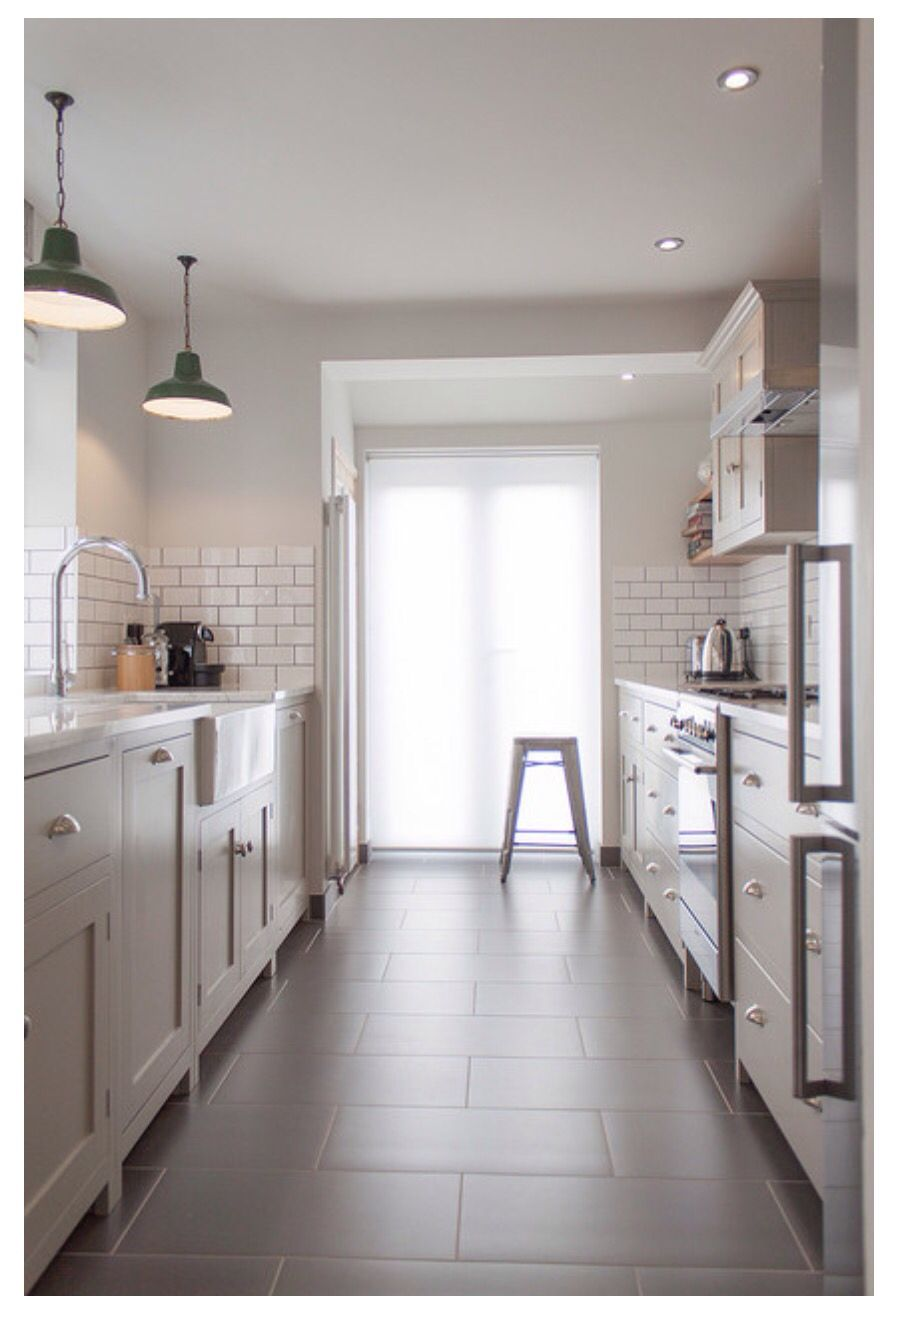 white and gray kitchen subway tiles shaker cabinets 12 x 24 white and gray kitchen subway tiles shaker cabinets 12 x 24 tiles